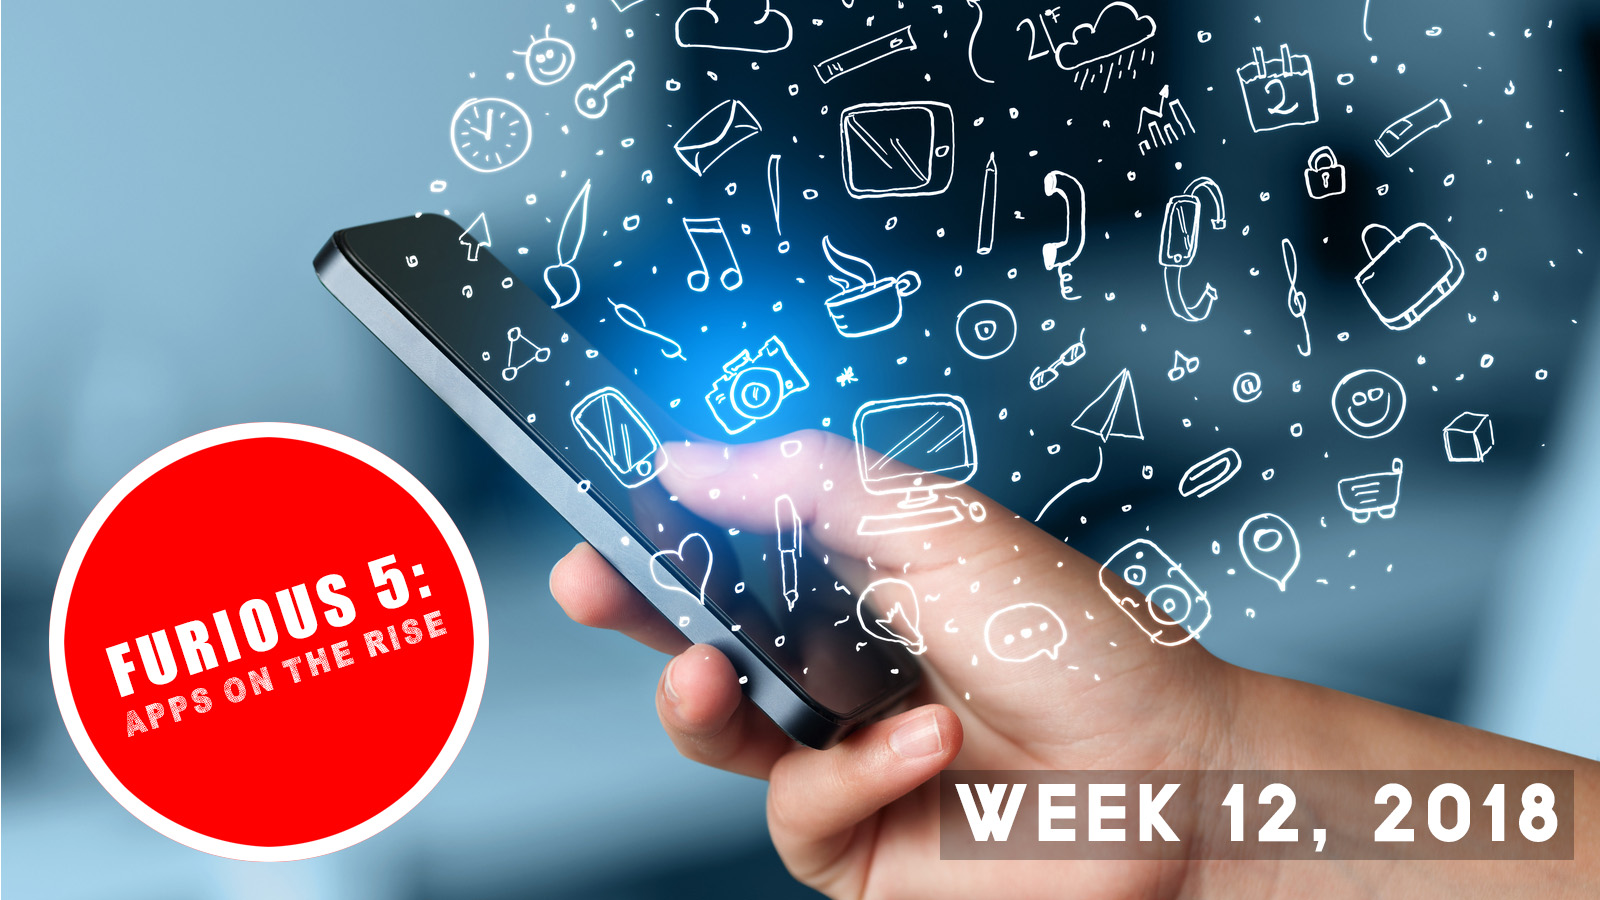 Furious 5: Apps on the rise (Week 12, 2018)